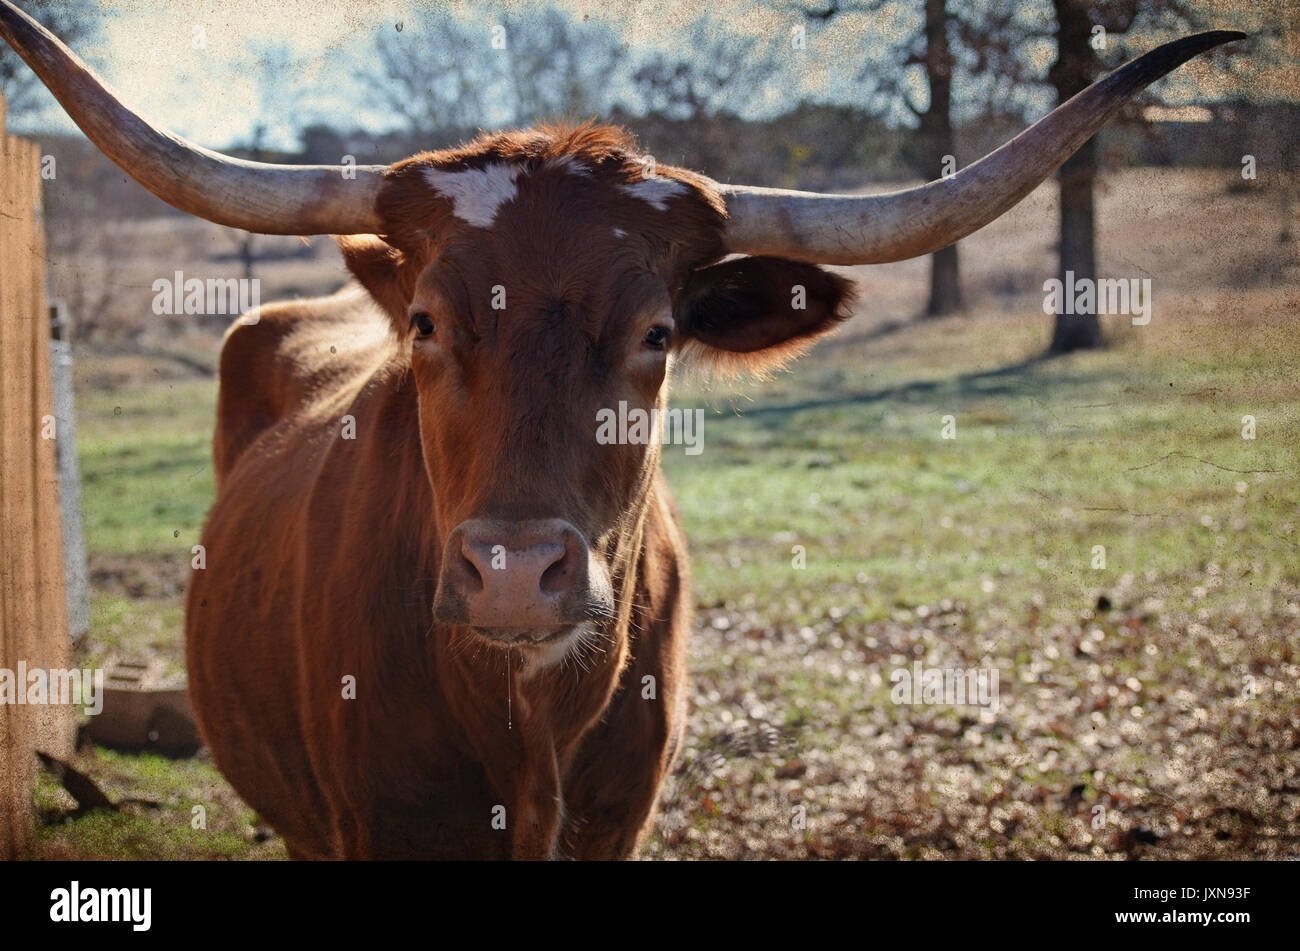 Longhorn cow on rural country ranch, with scenic pasture landscape in background.  Authentic happy farm animal. - Stock Image